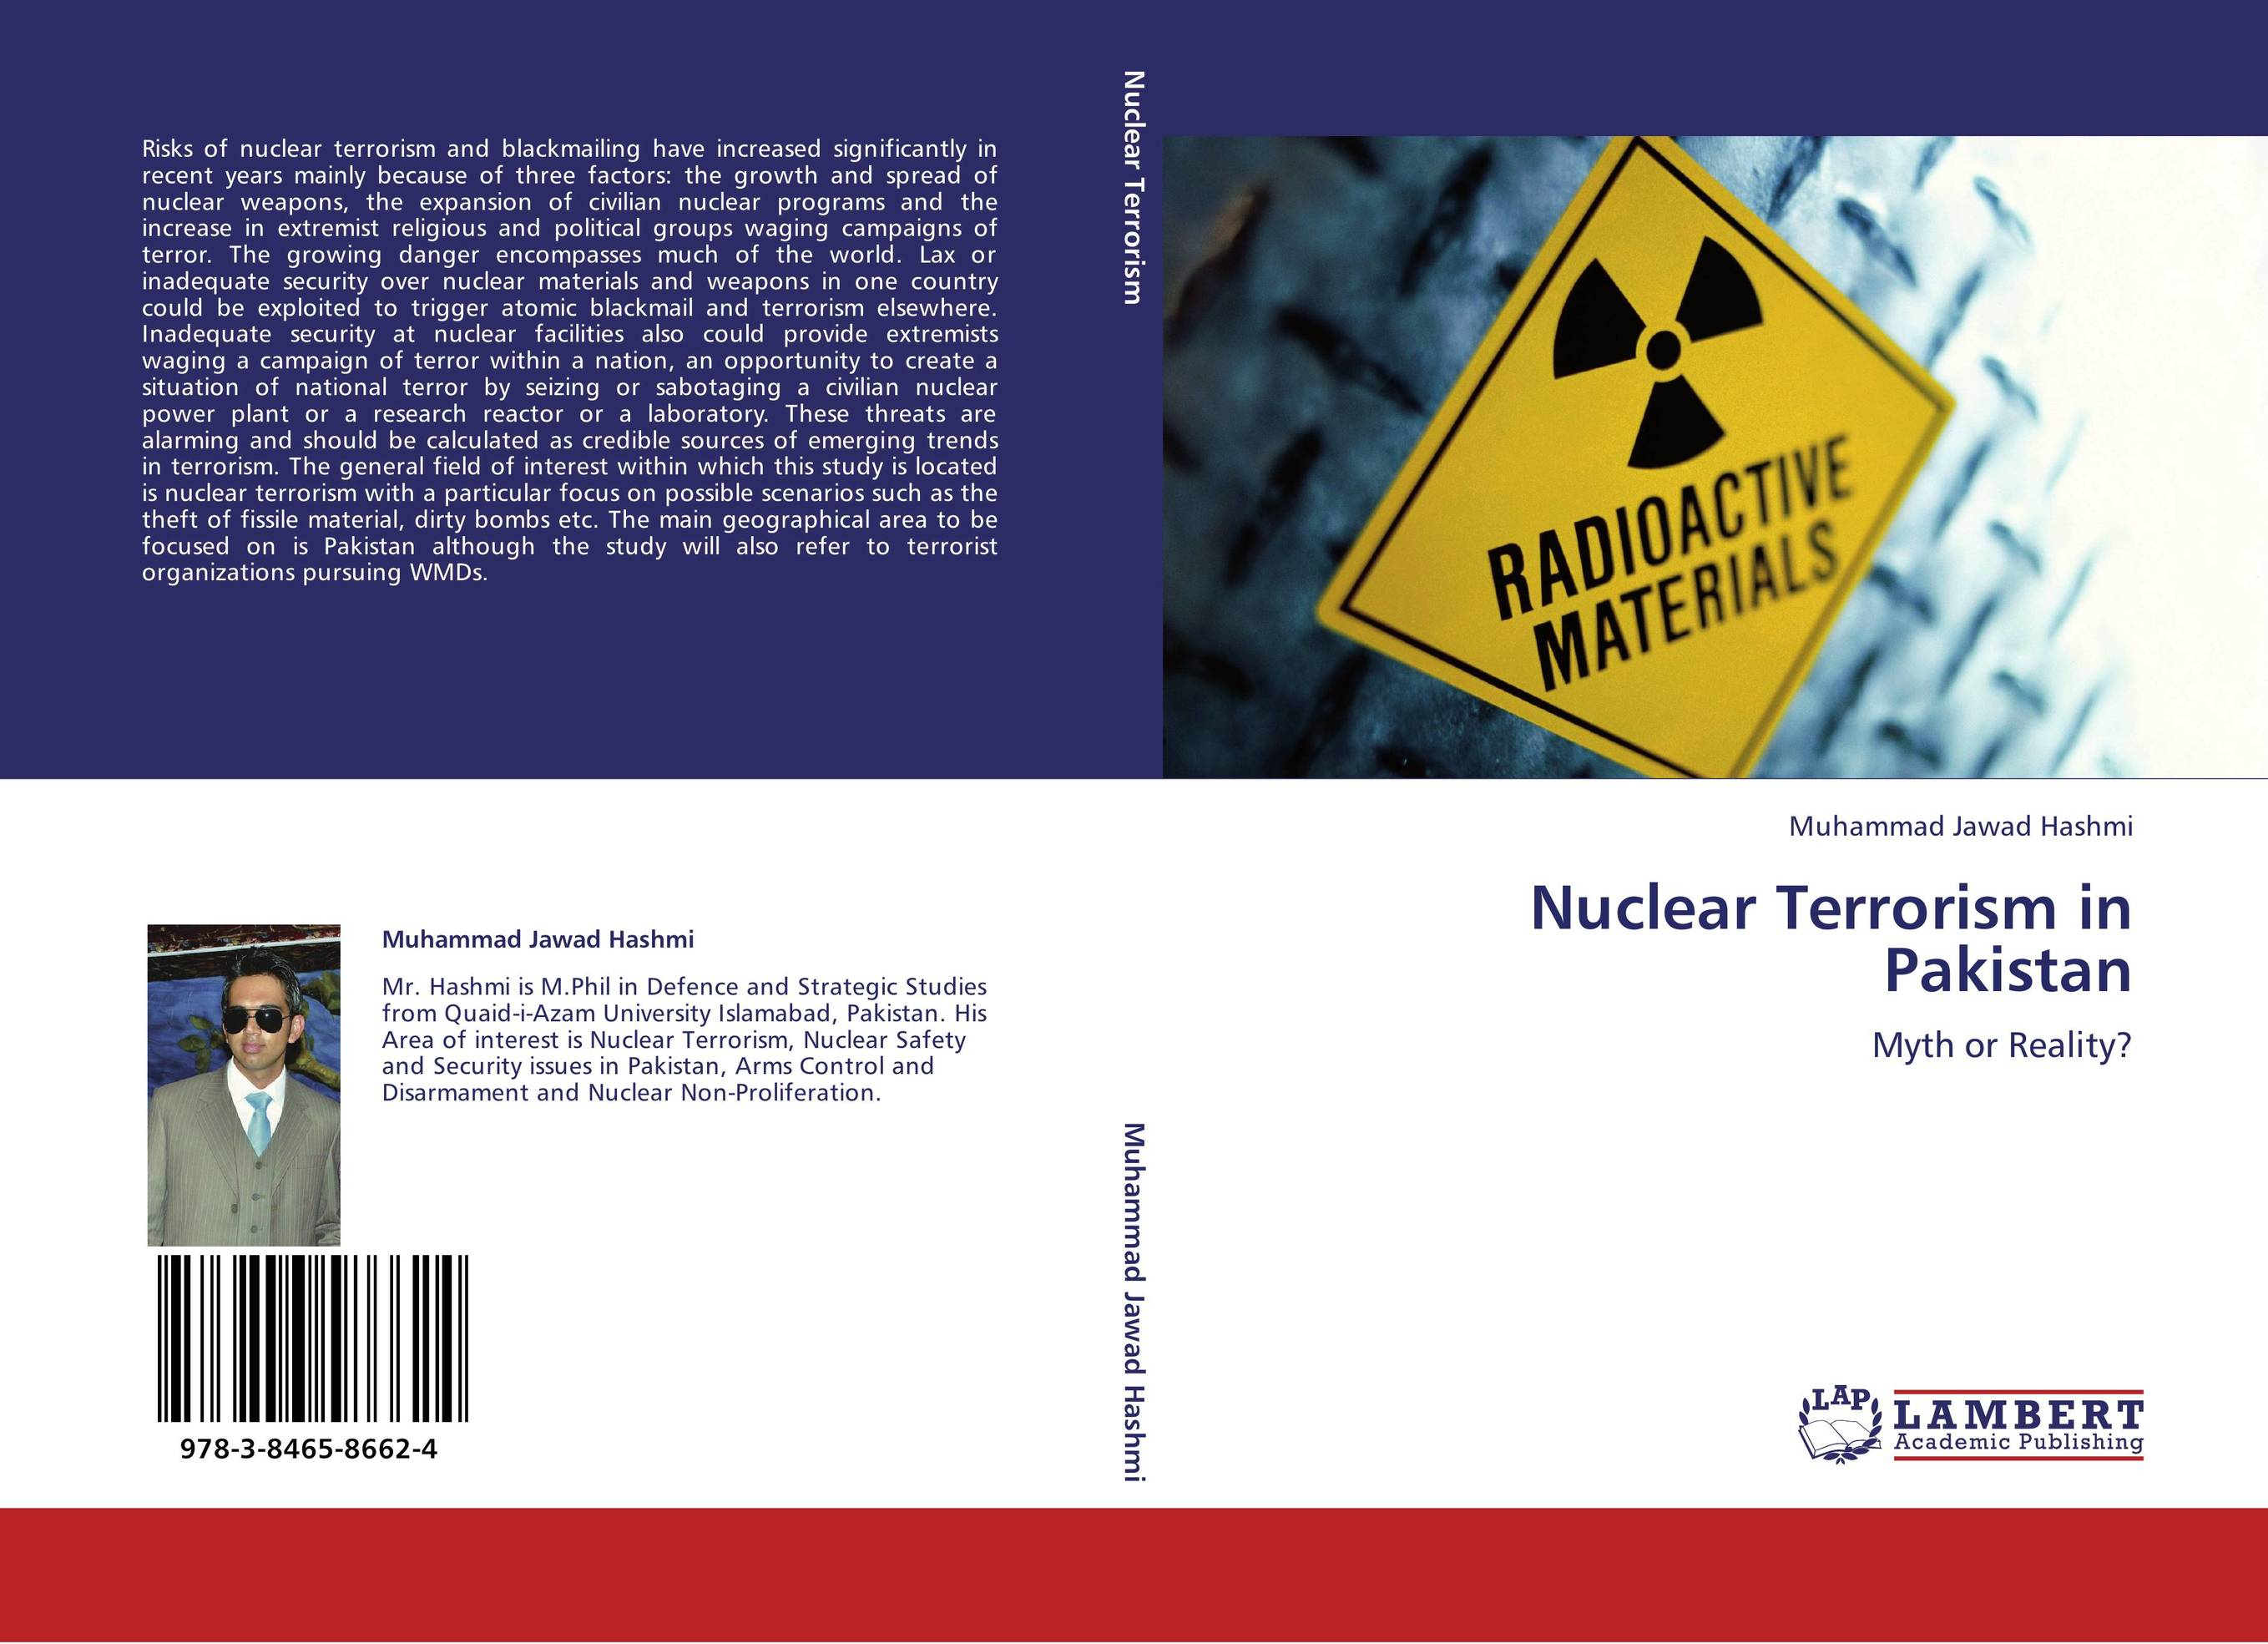 analysis of nuclear terrorism On nuclear terrorism confronts what many argue is the greatest national security threat we face: terrorist groups armed with nuclear weapons in contrast with most writing on the subject, which.